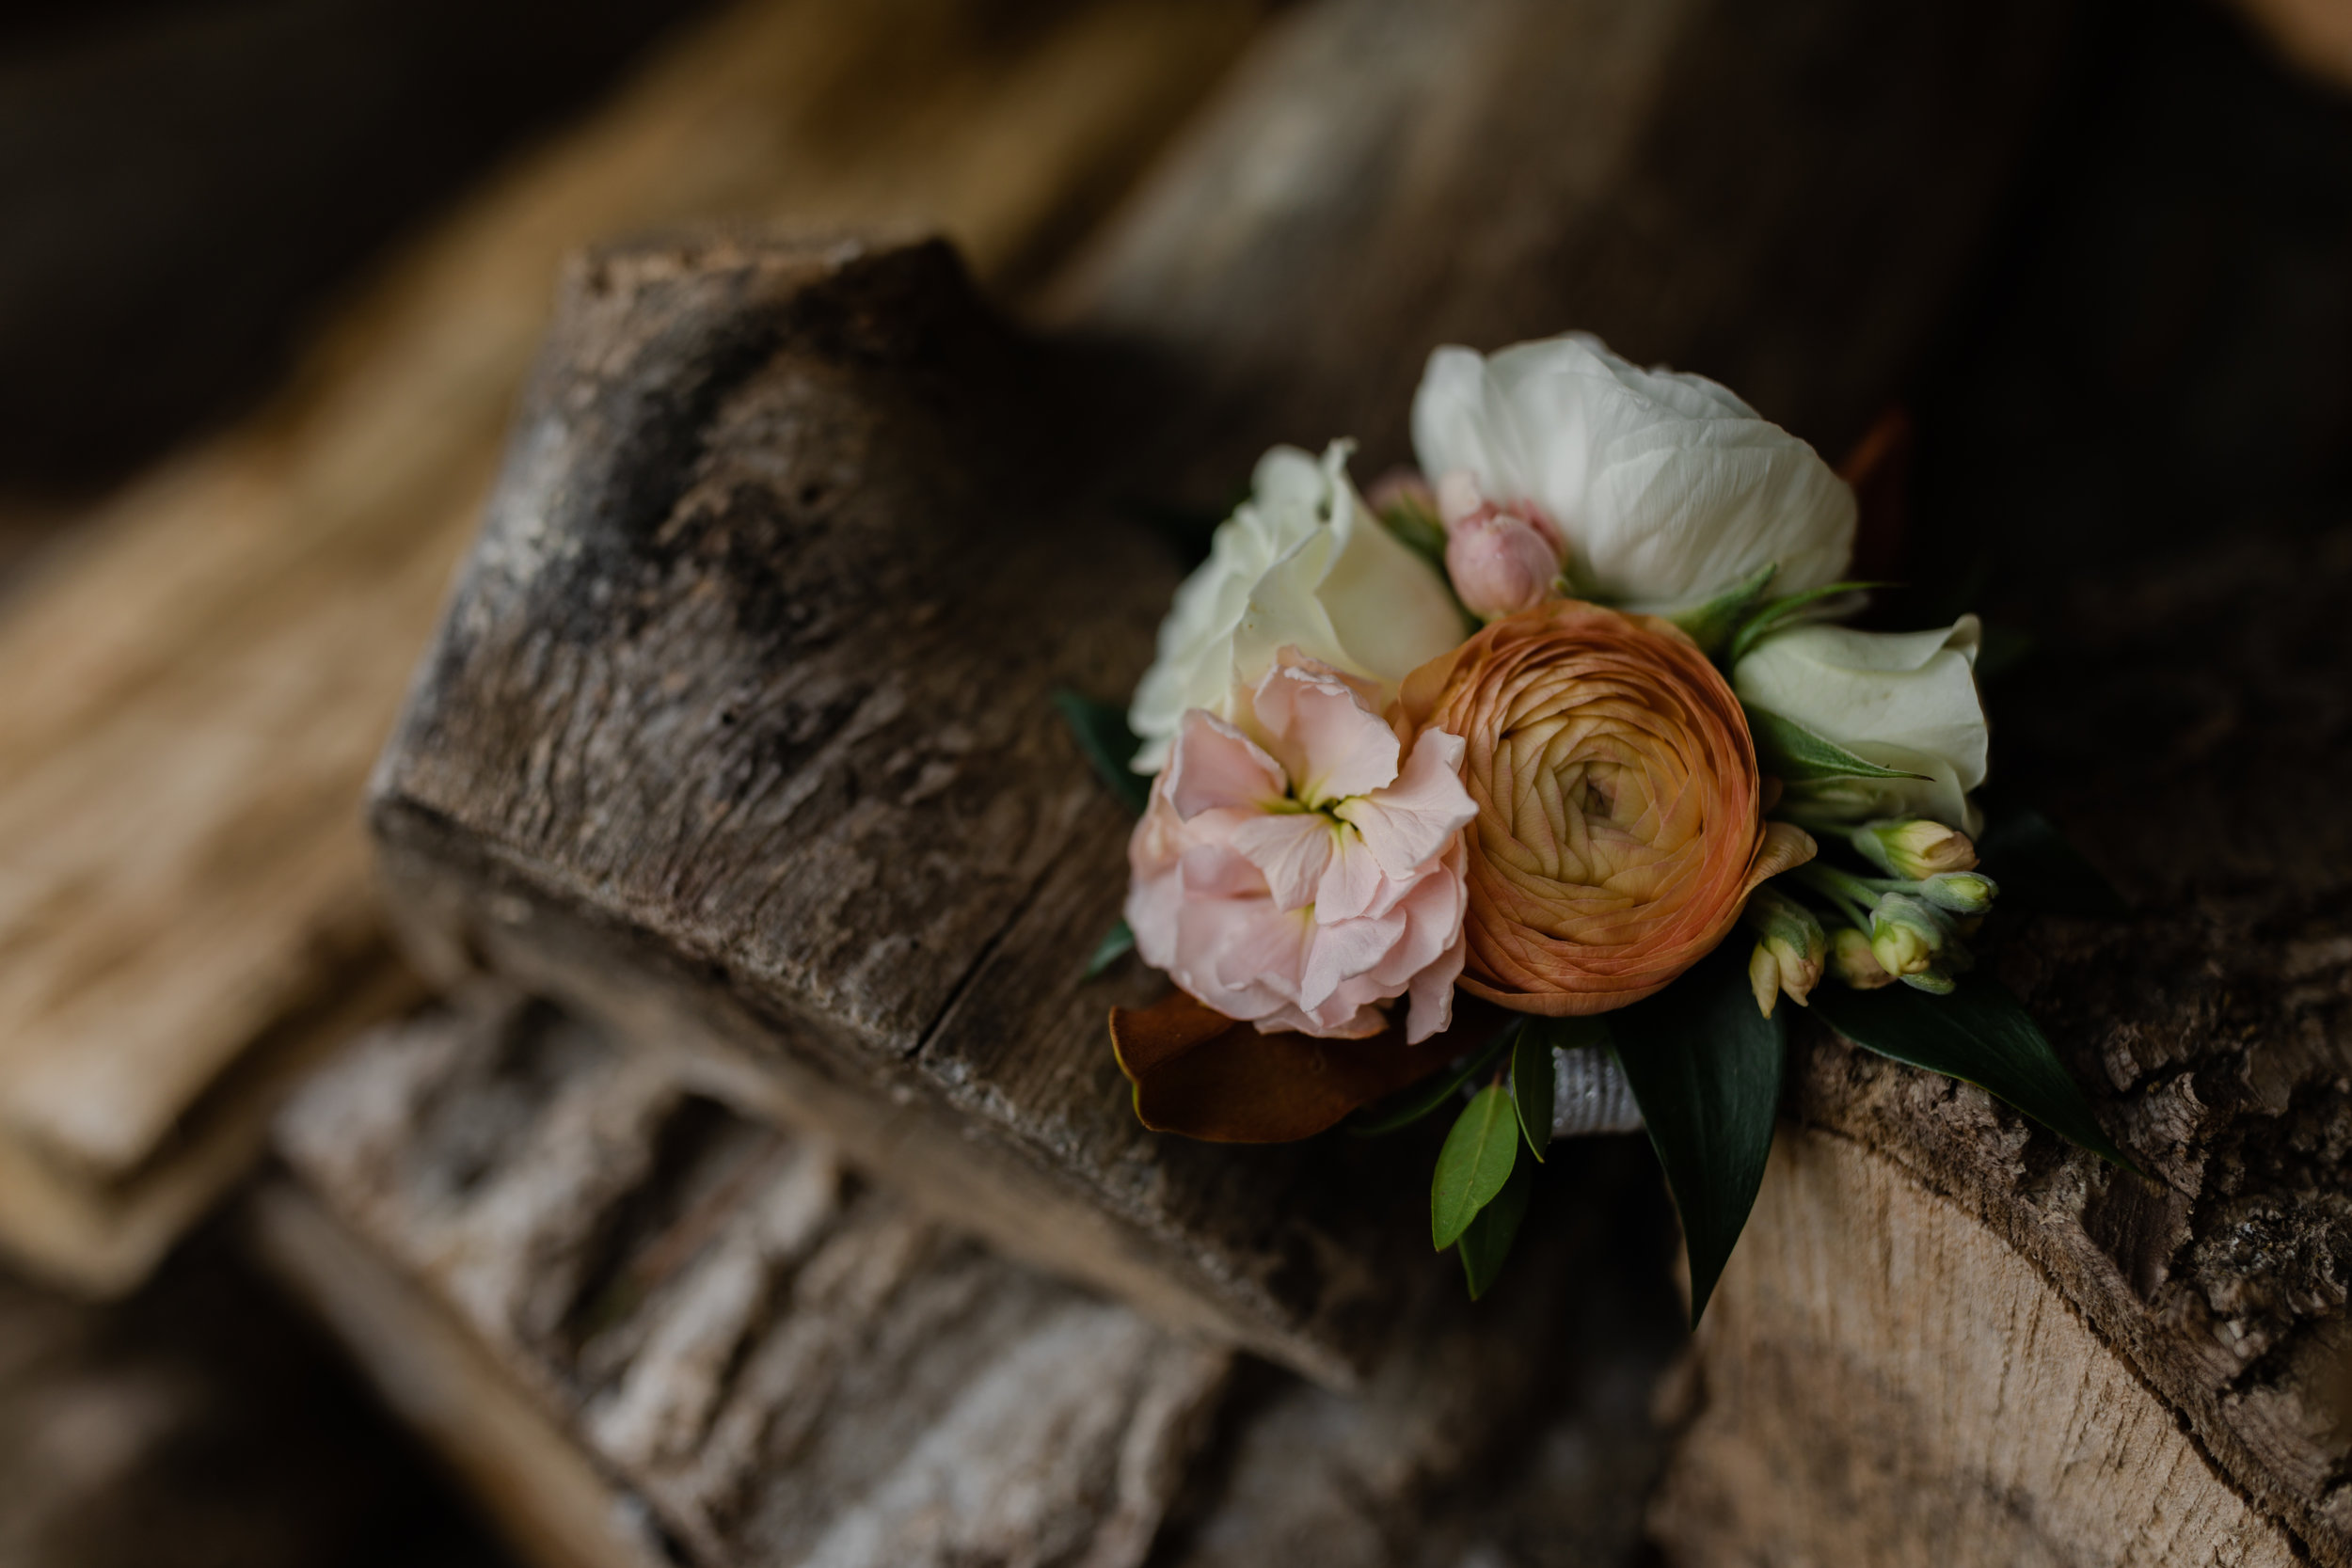 colleen biese photograohy